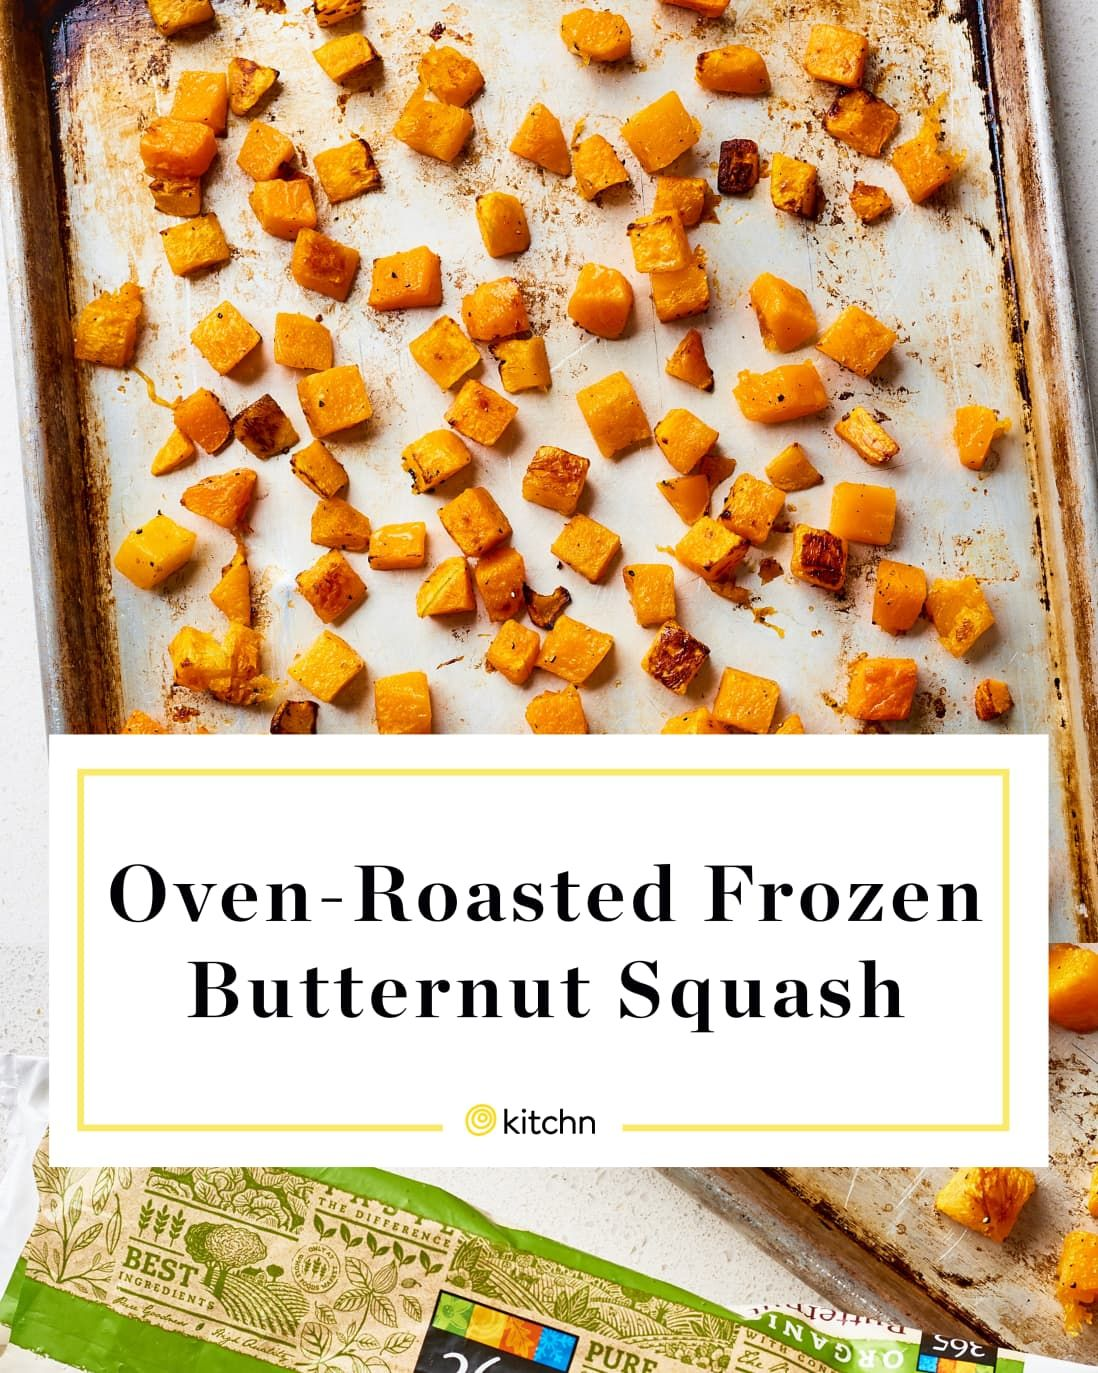 How To Roast Frozen Butternut Squash Recipe With Images